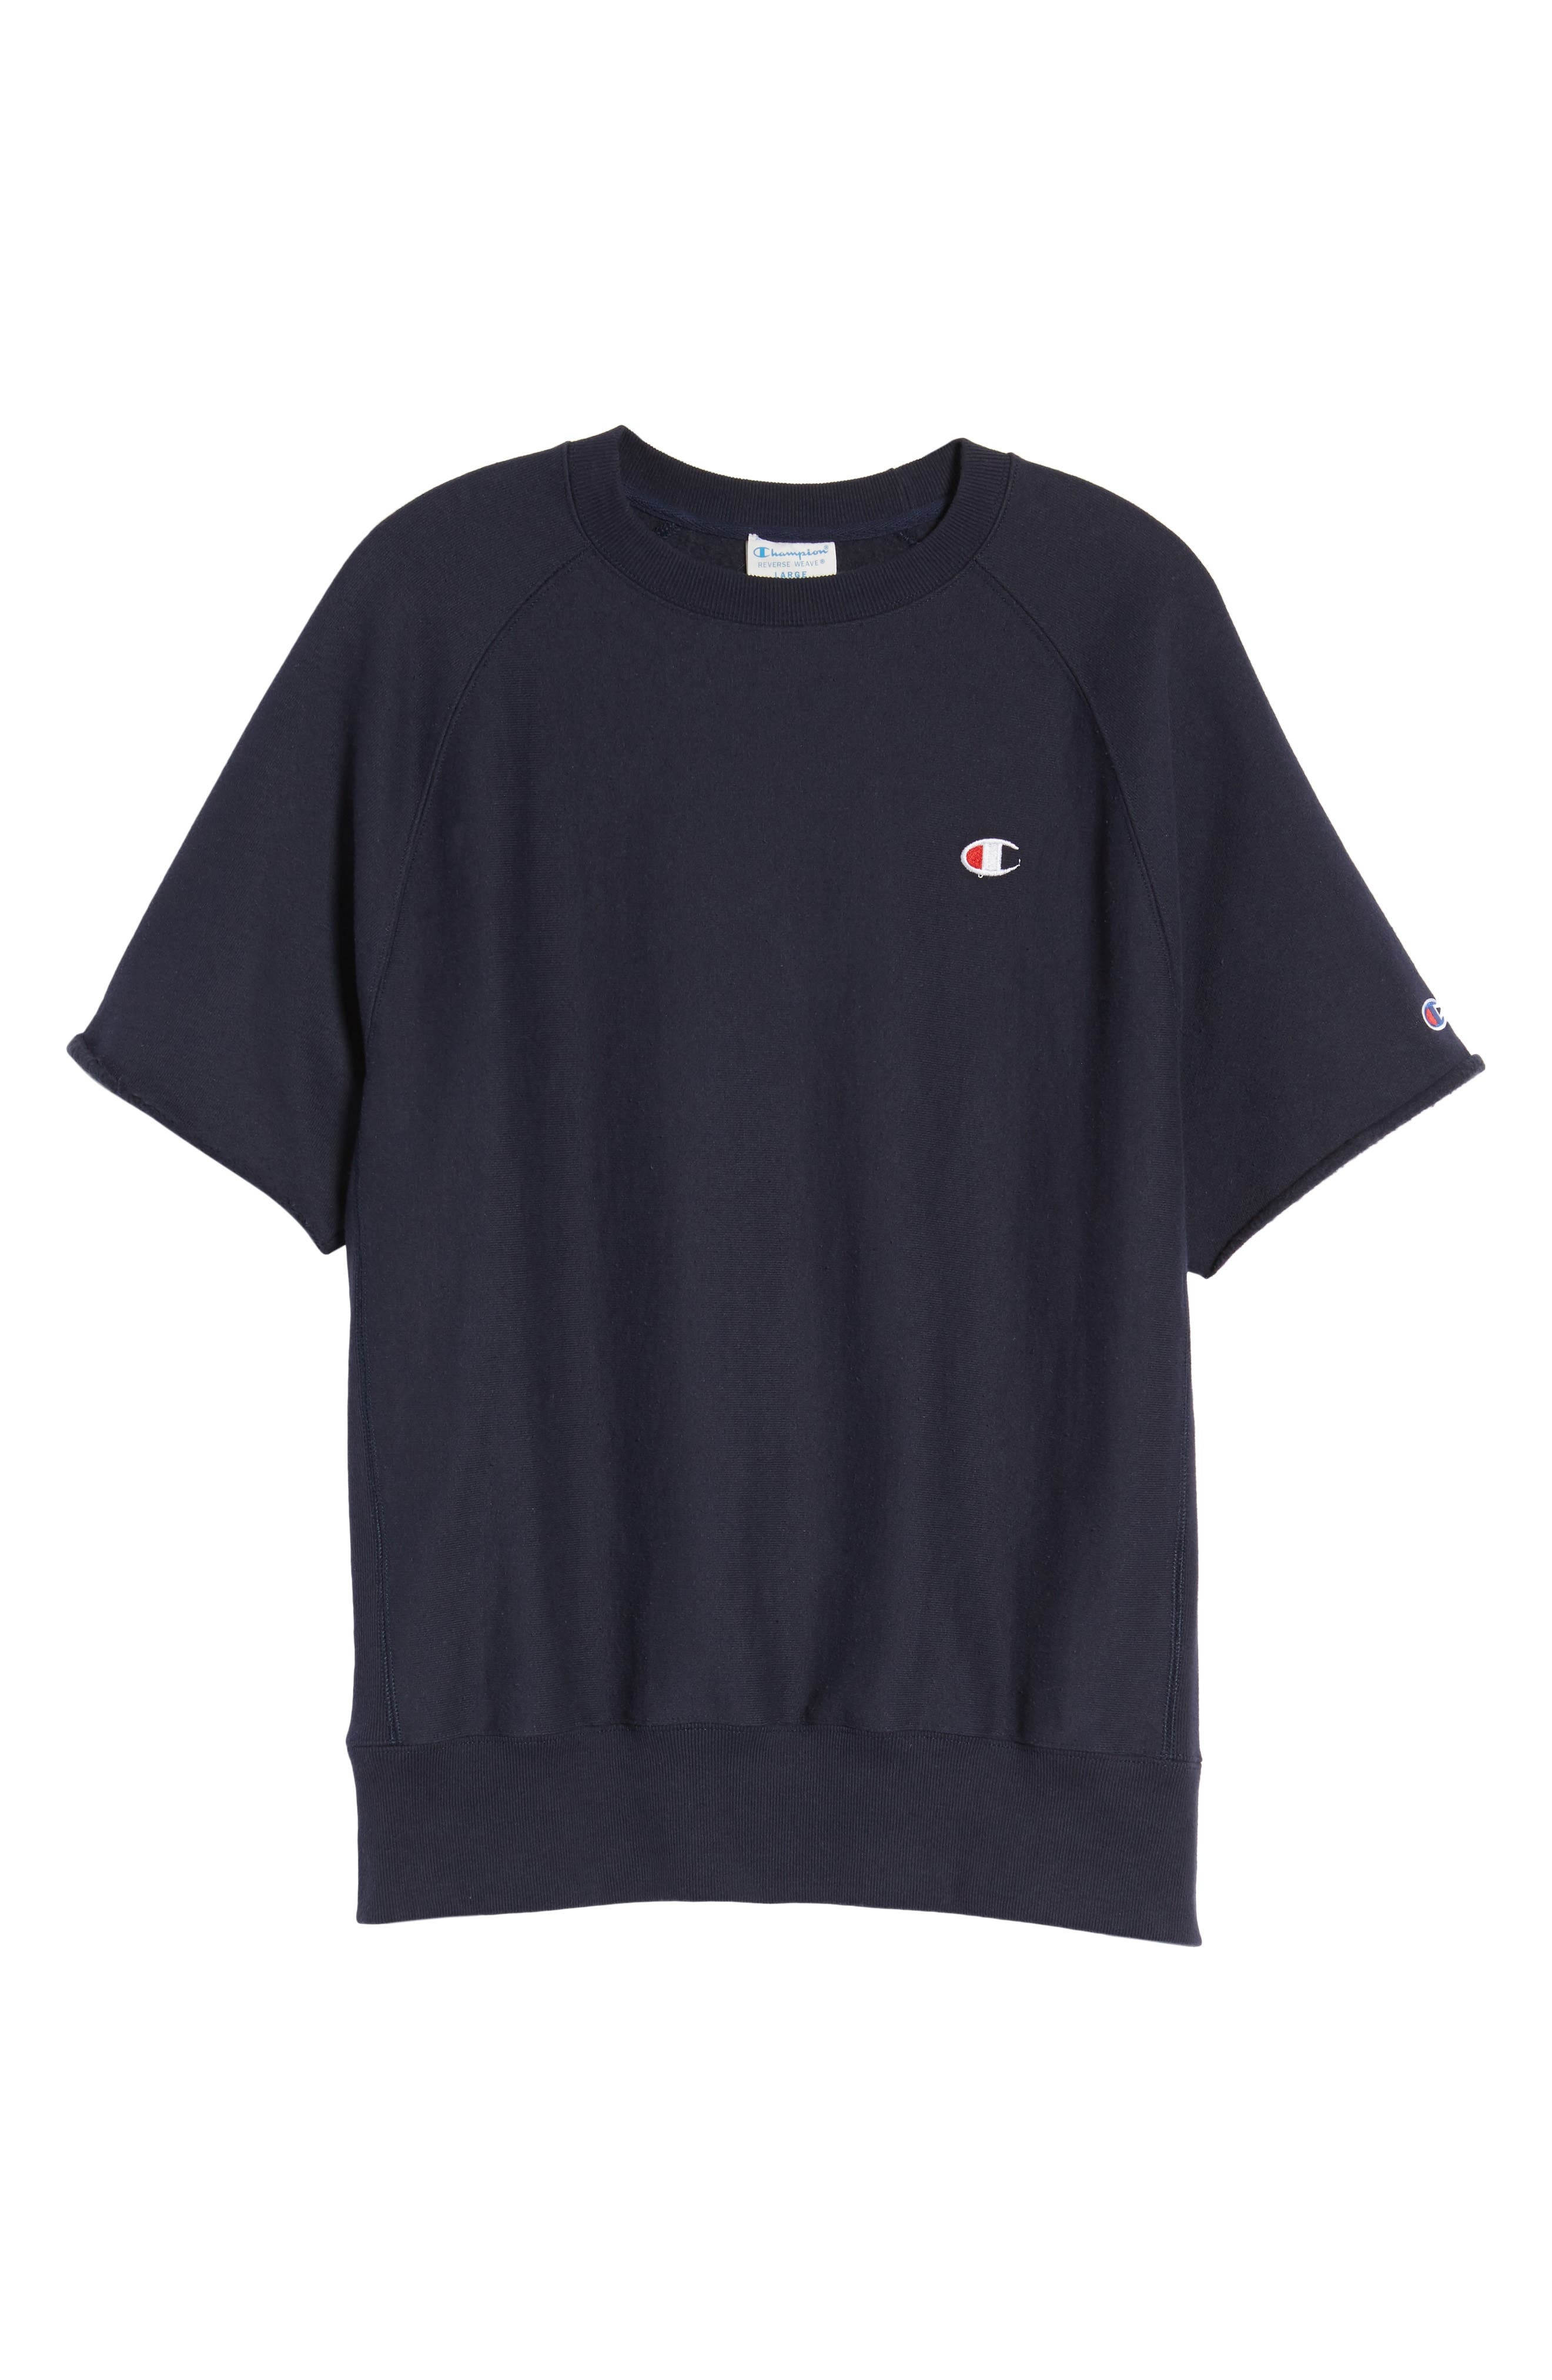 Reverse Weave Short Sleeve Sweatshirt,                             Alternate thumbnail 6, color,                             Navy